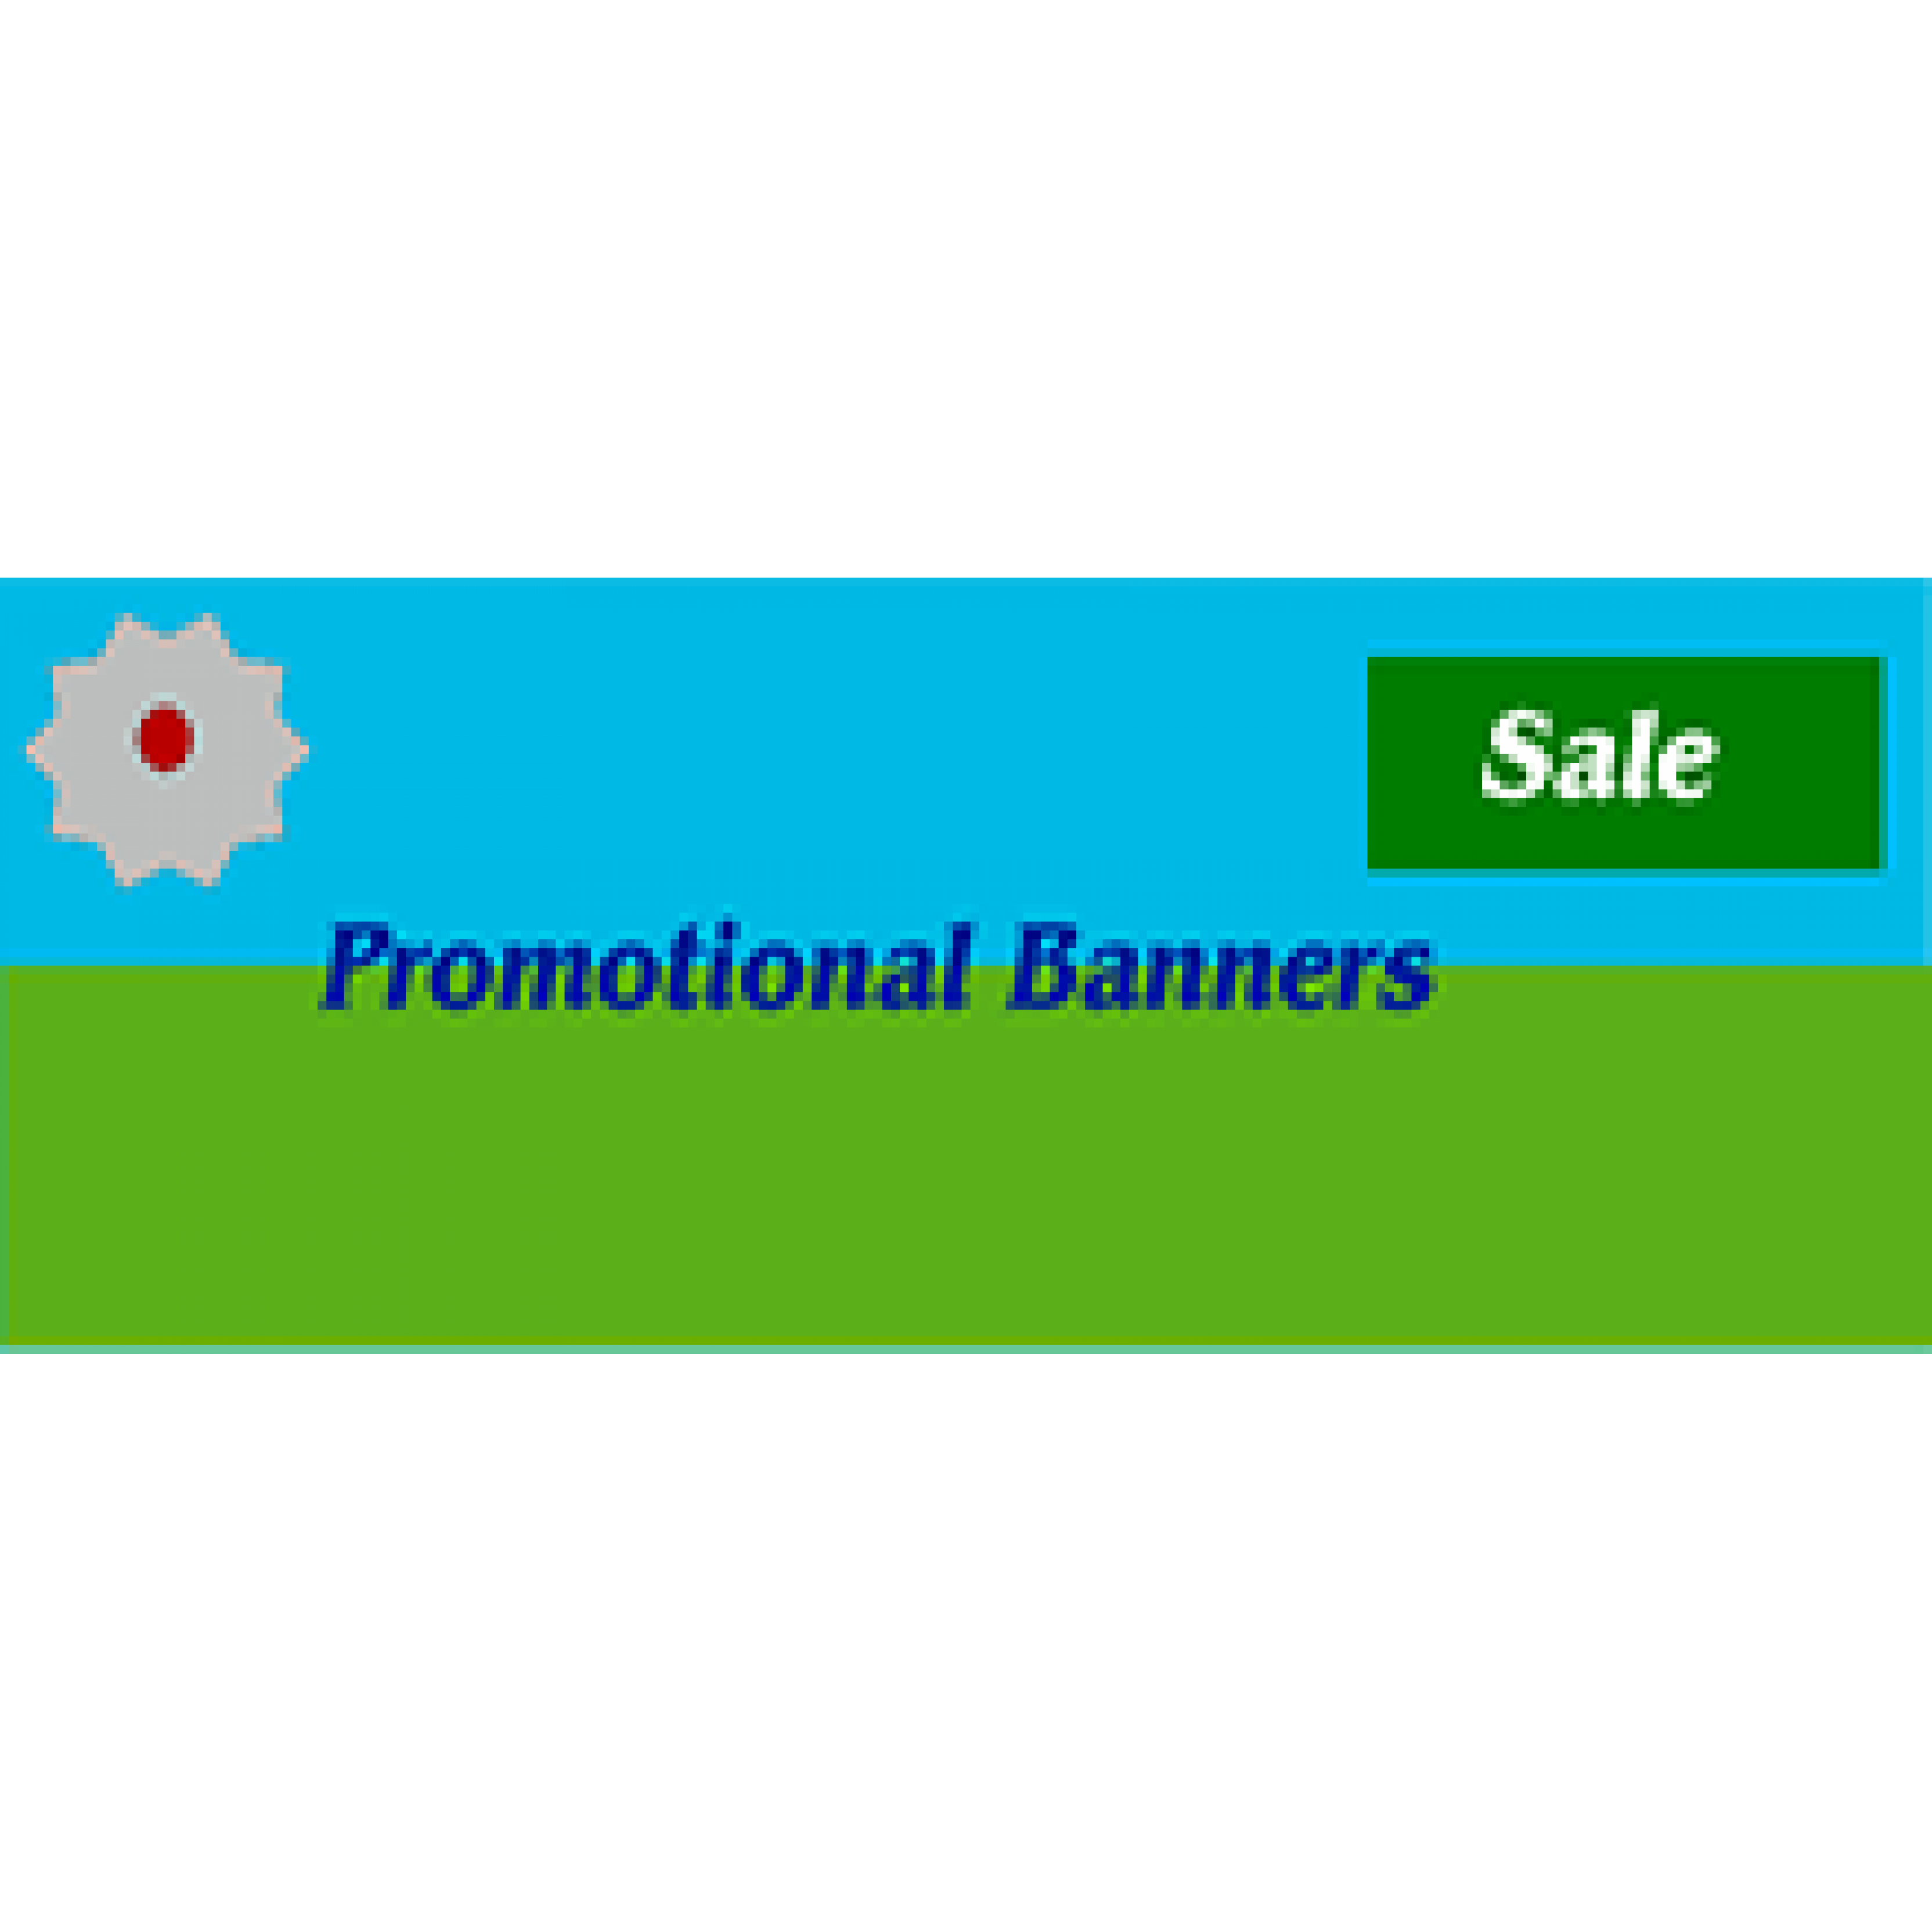 Promotional Banner 48x144 inches